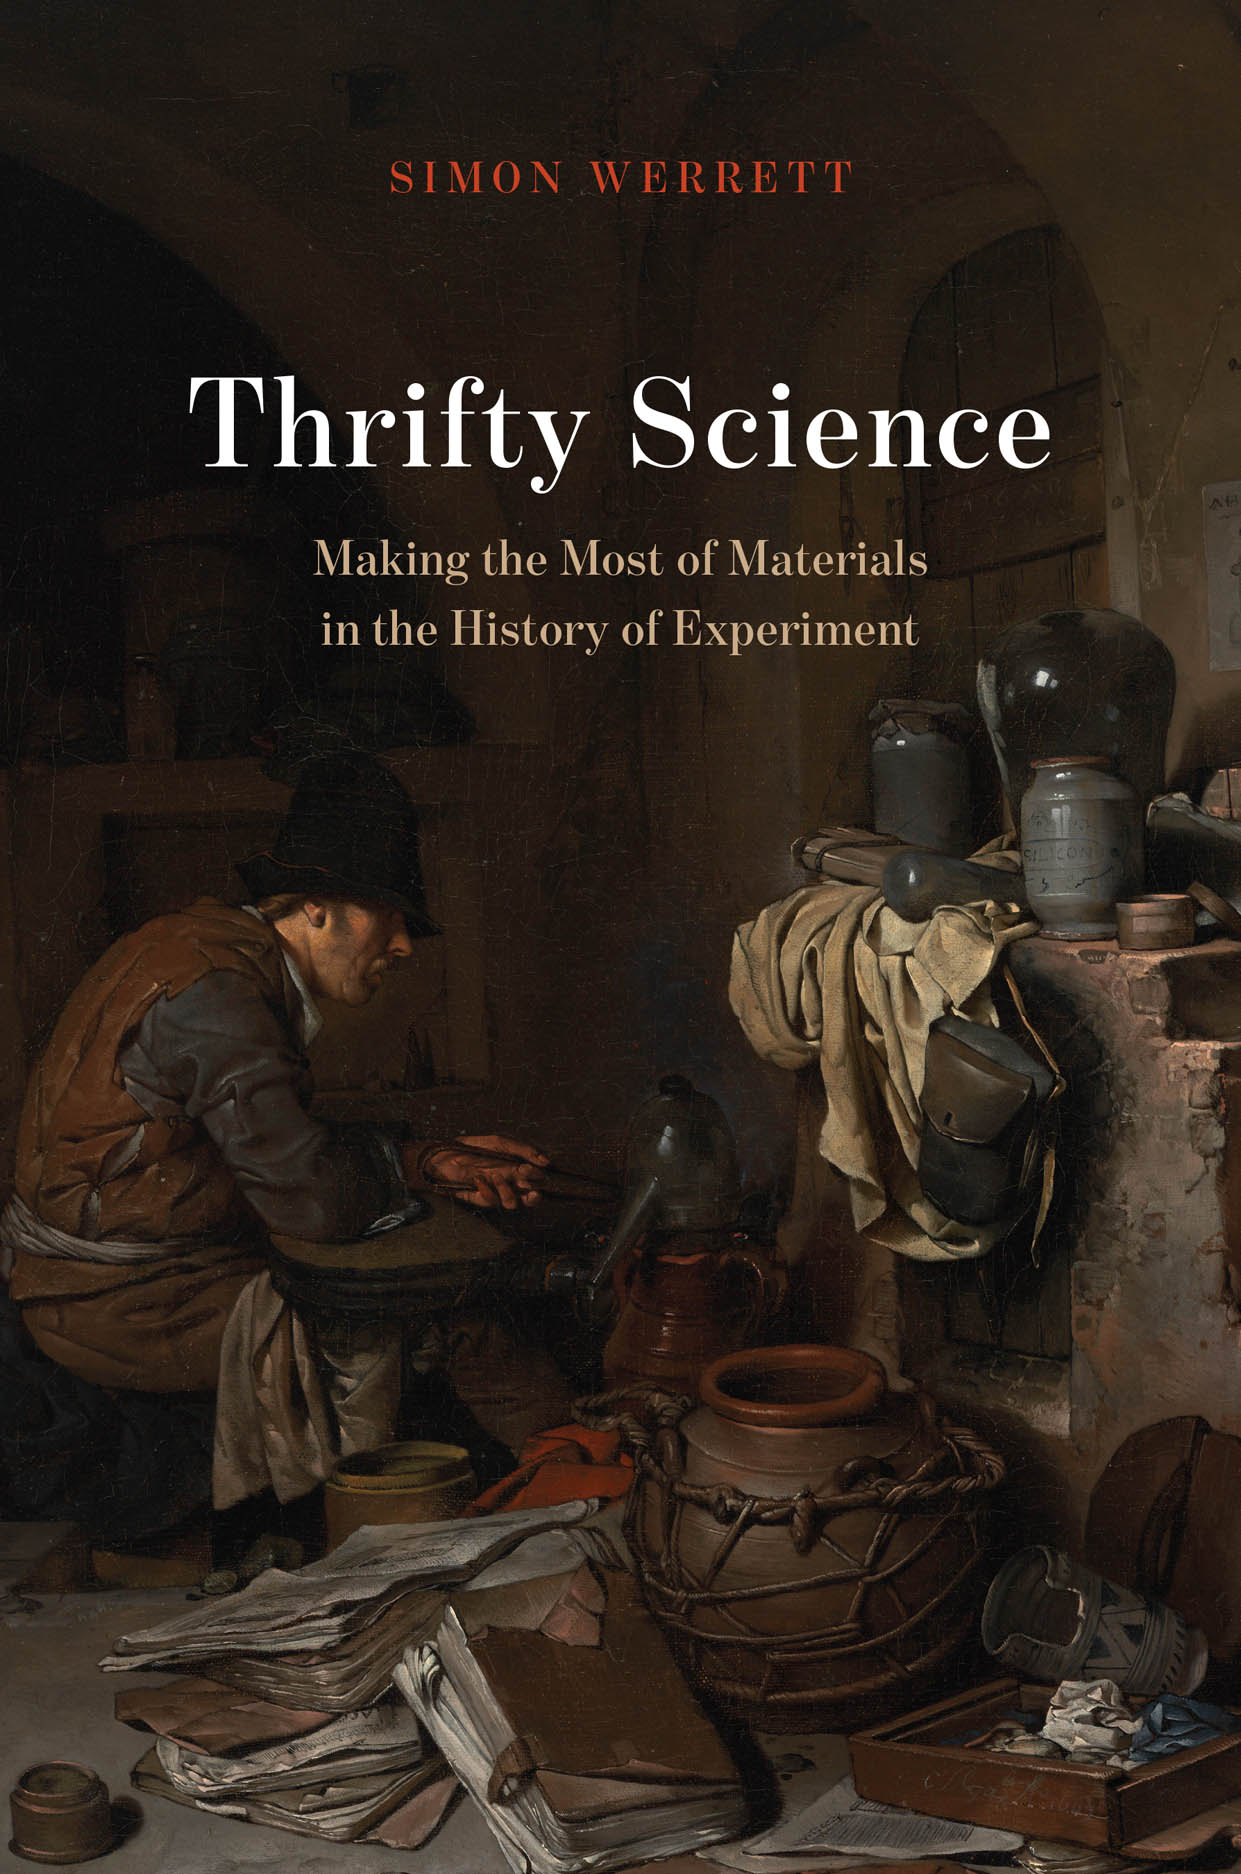 Thrifty Science: Making the Most of Materials in the History of Experiment